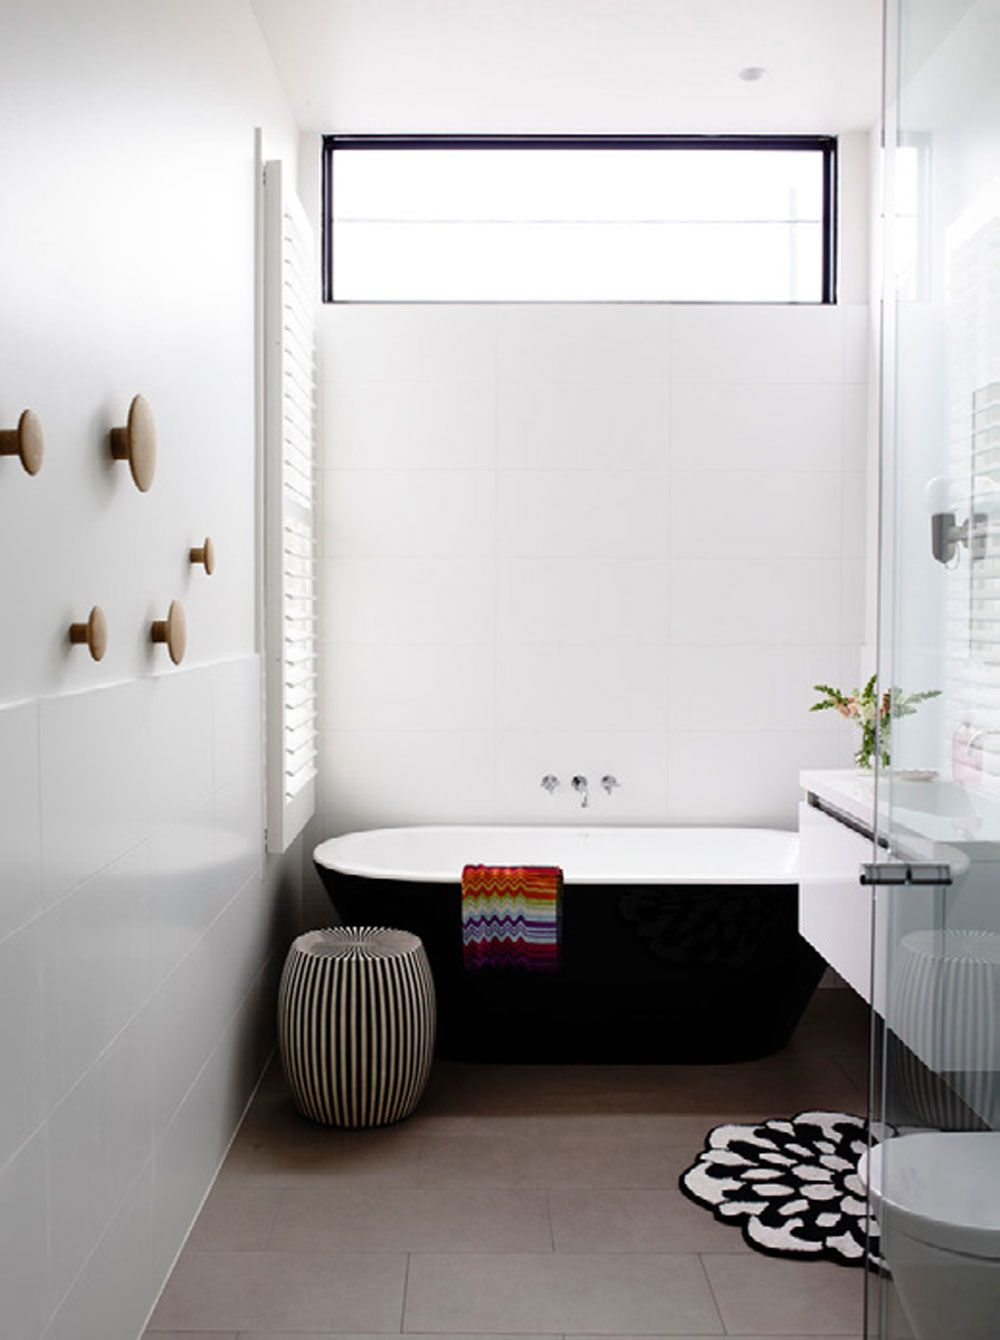 Designing A Small Bathroom - Ideas And Tips (5)